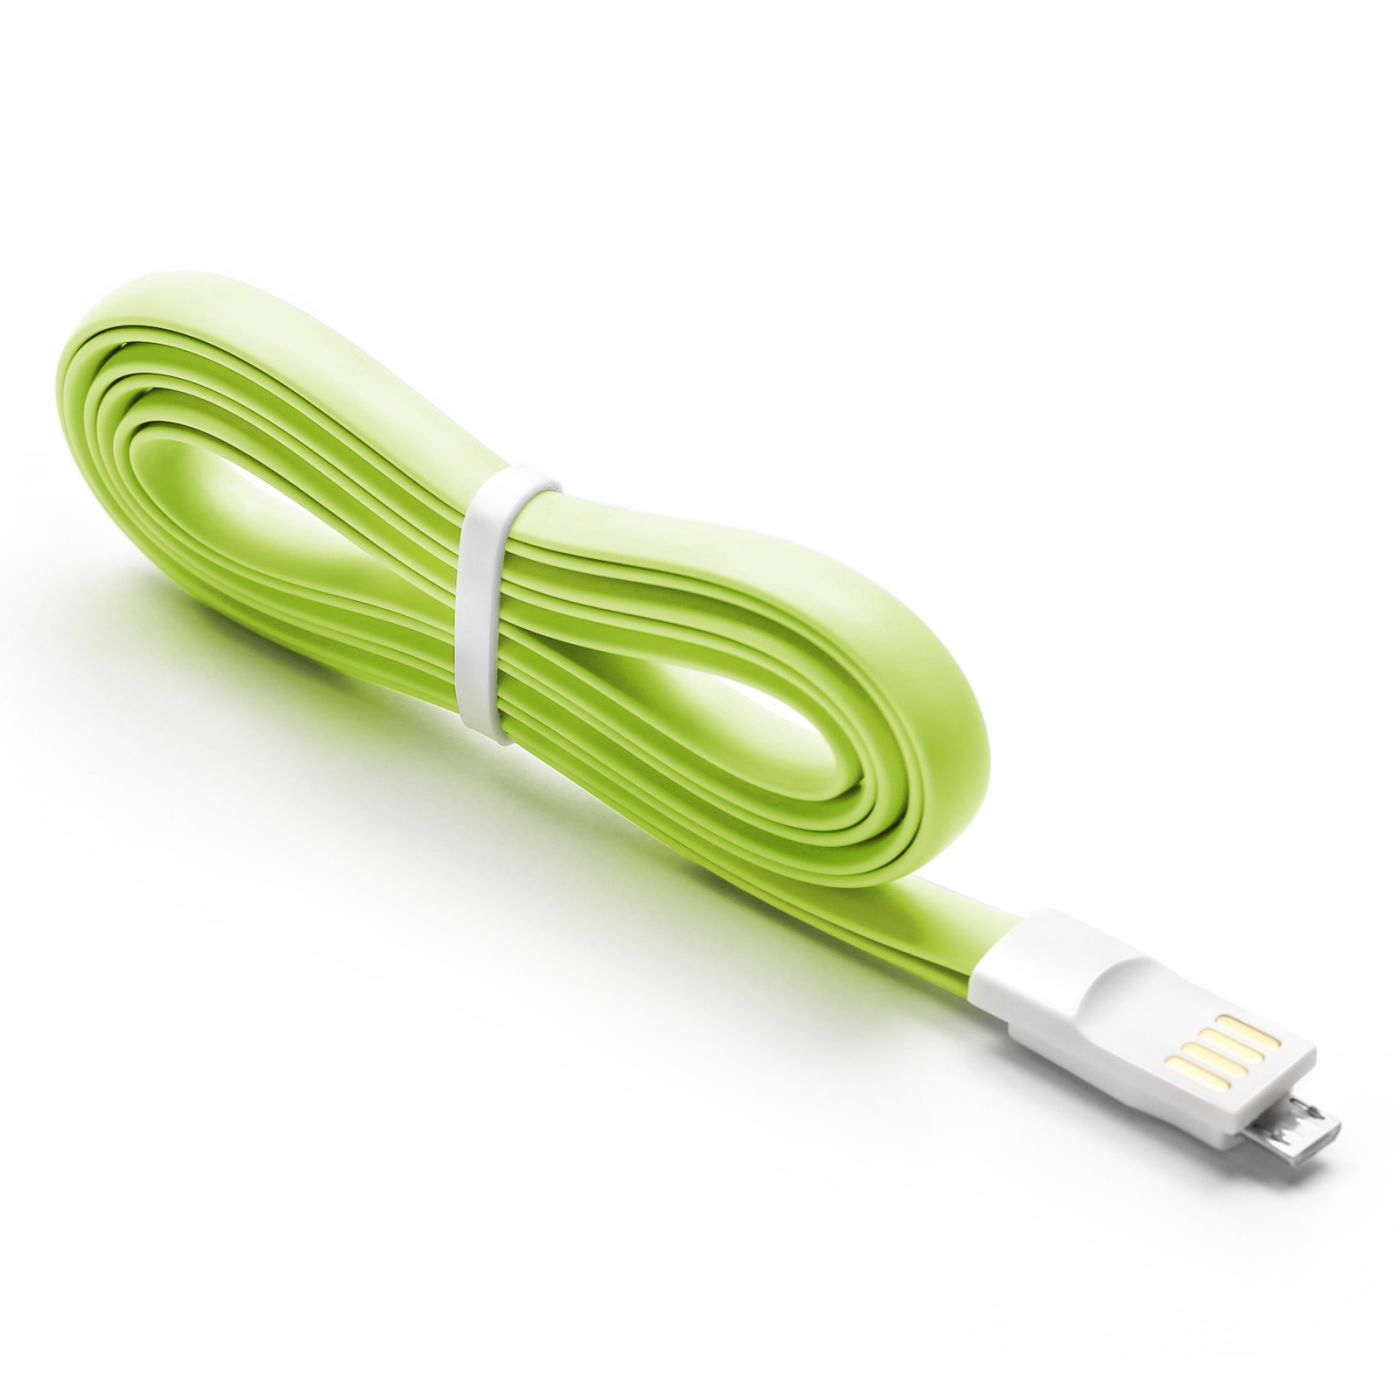 Кабель USB - microUSB  Xiaomi  Mi Colorful  120 см.(Салатовый)